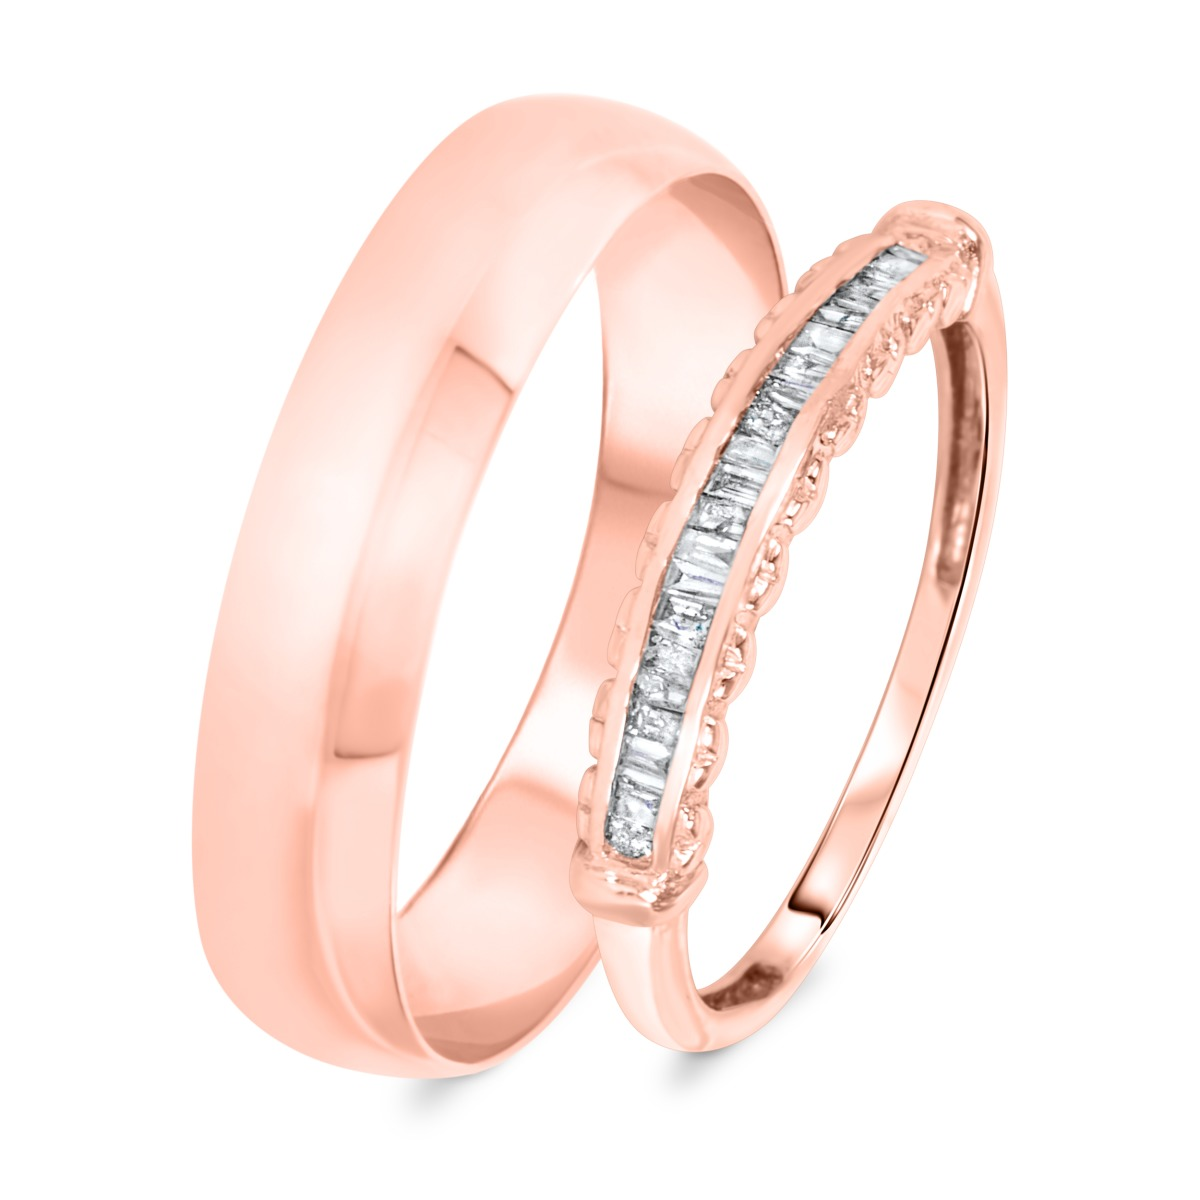 1/4 Carat T.W. Baguette Cut Diamond His and Hers Wedding Band Set 14K Rose Gold